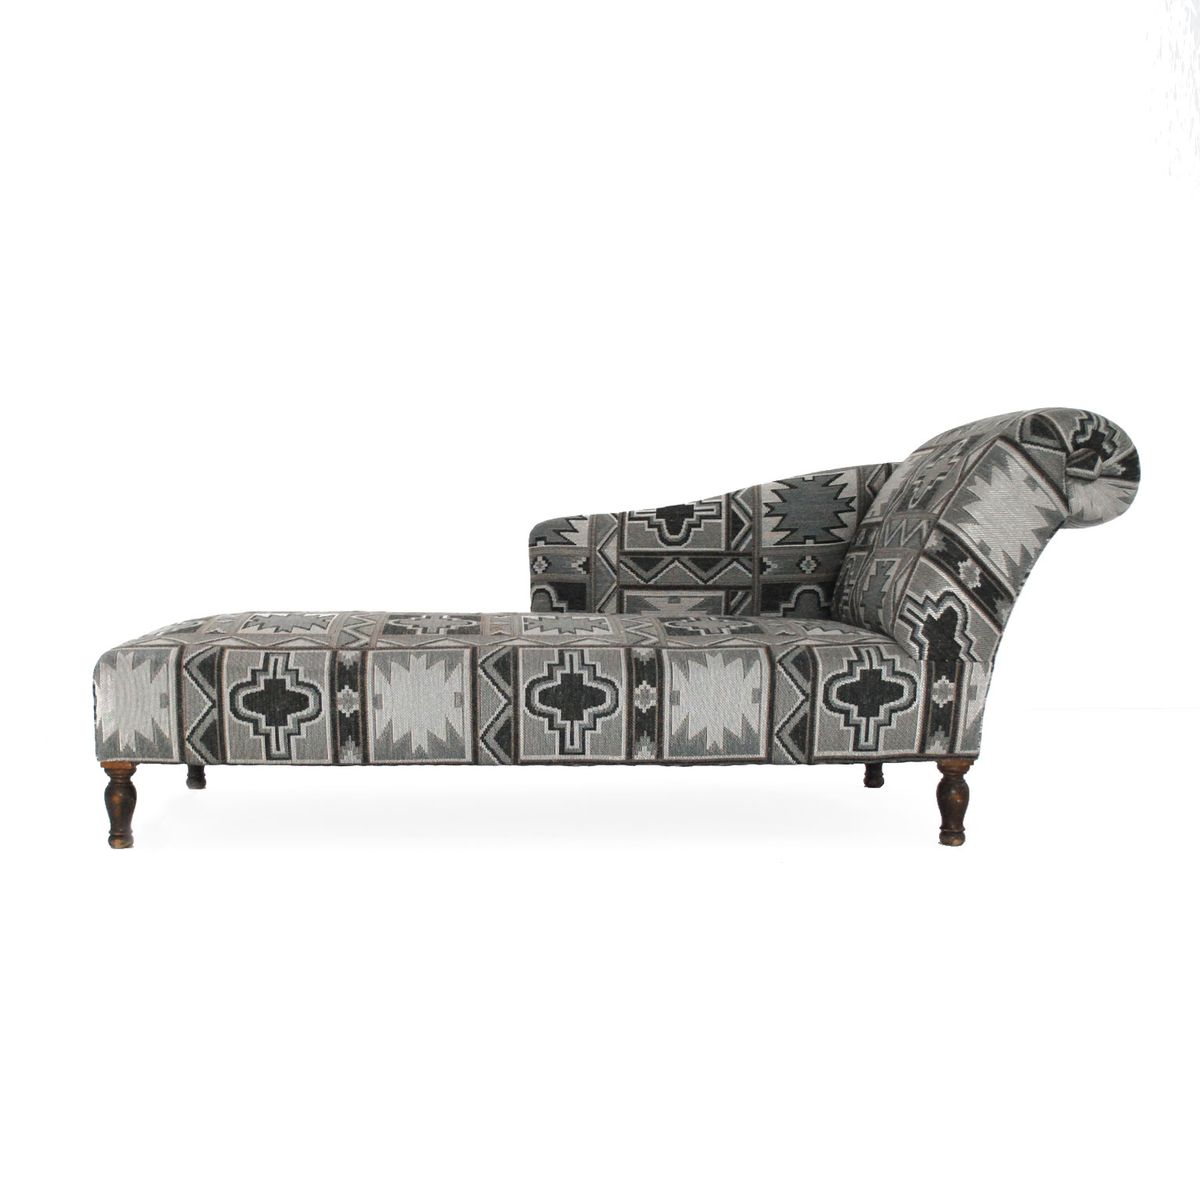 french chaise longue with geometric print 1940s for sale. Black Bedroom Furniture Sets. Home Design Ideas